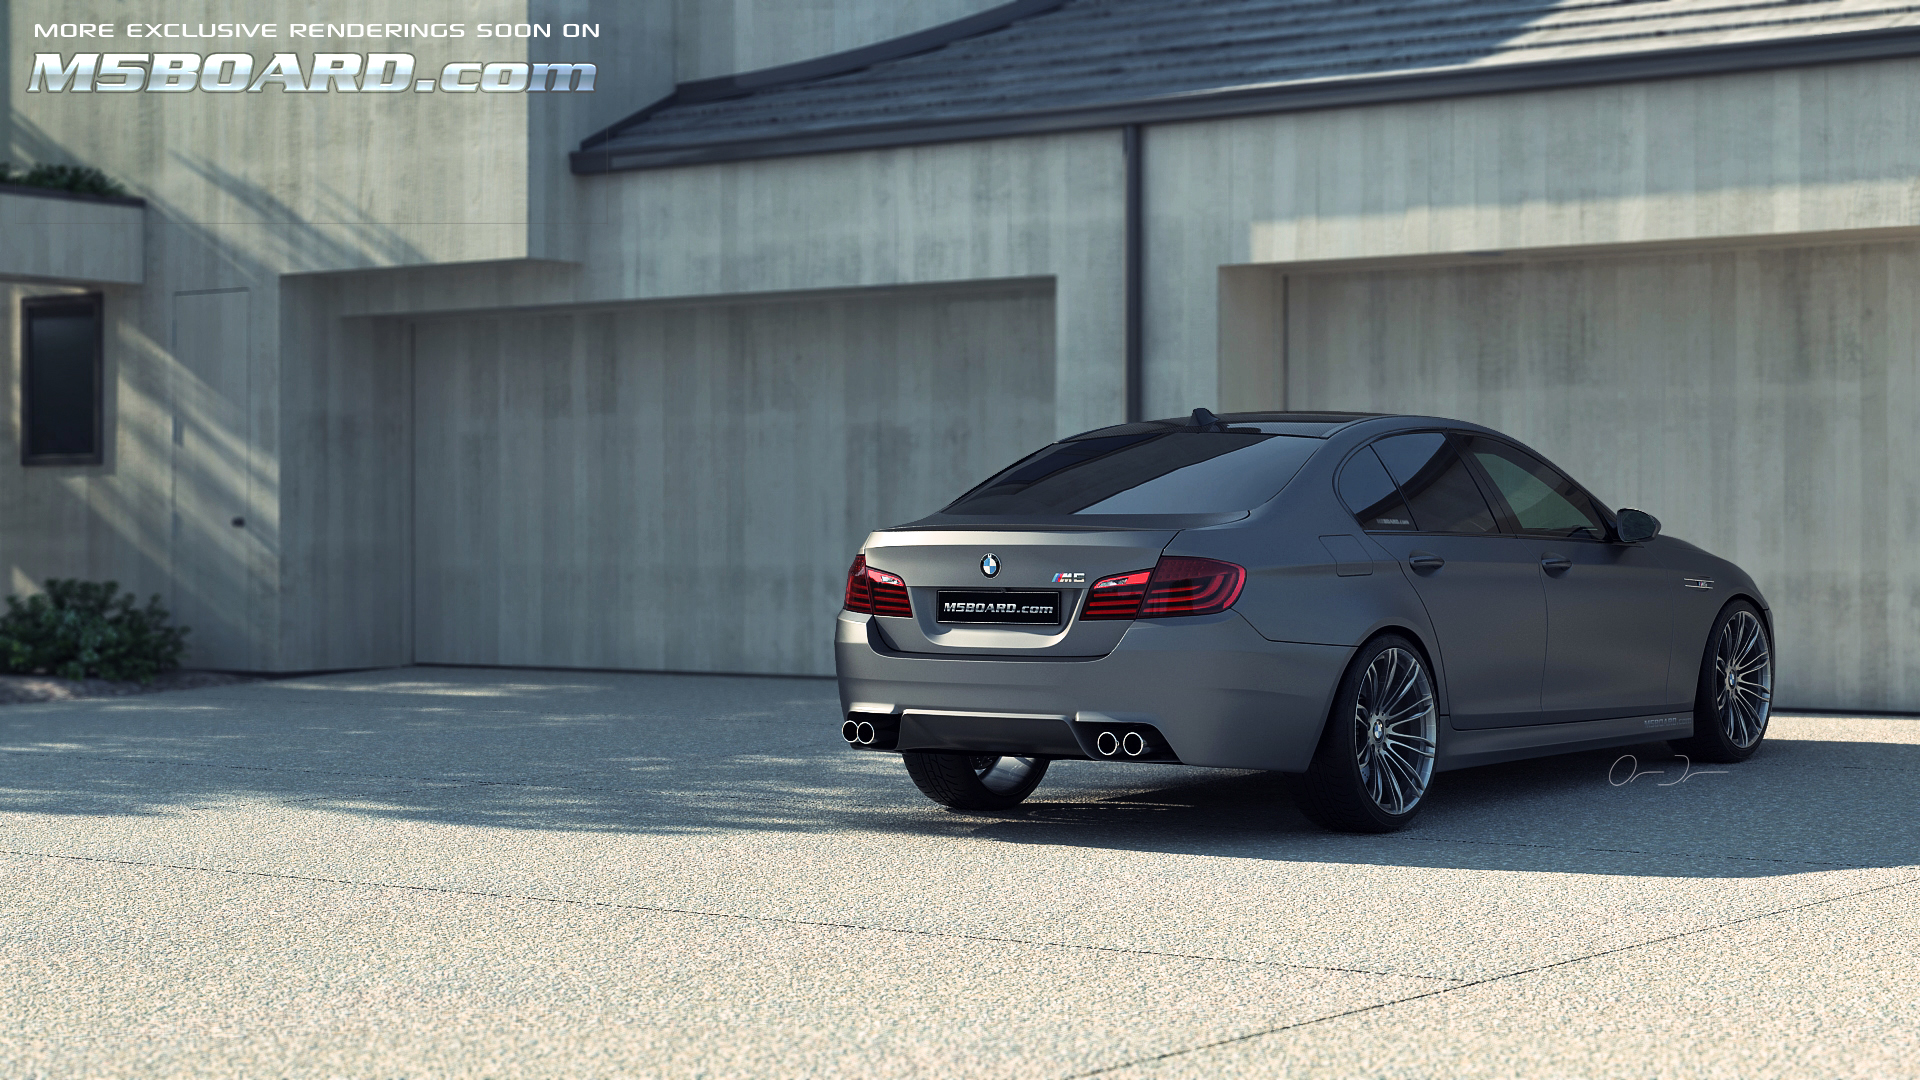 Picture (3D Studio computerrendering): BMW M5 F10 2011 in clear Indianapolis Red + Interlagos Blue at the Luxury Estate from the Front and Rear-07.jpg